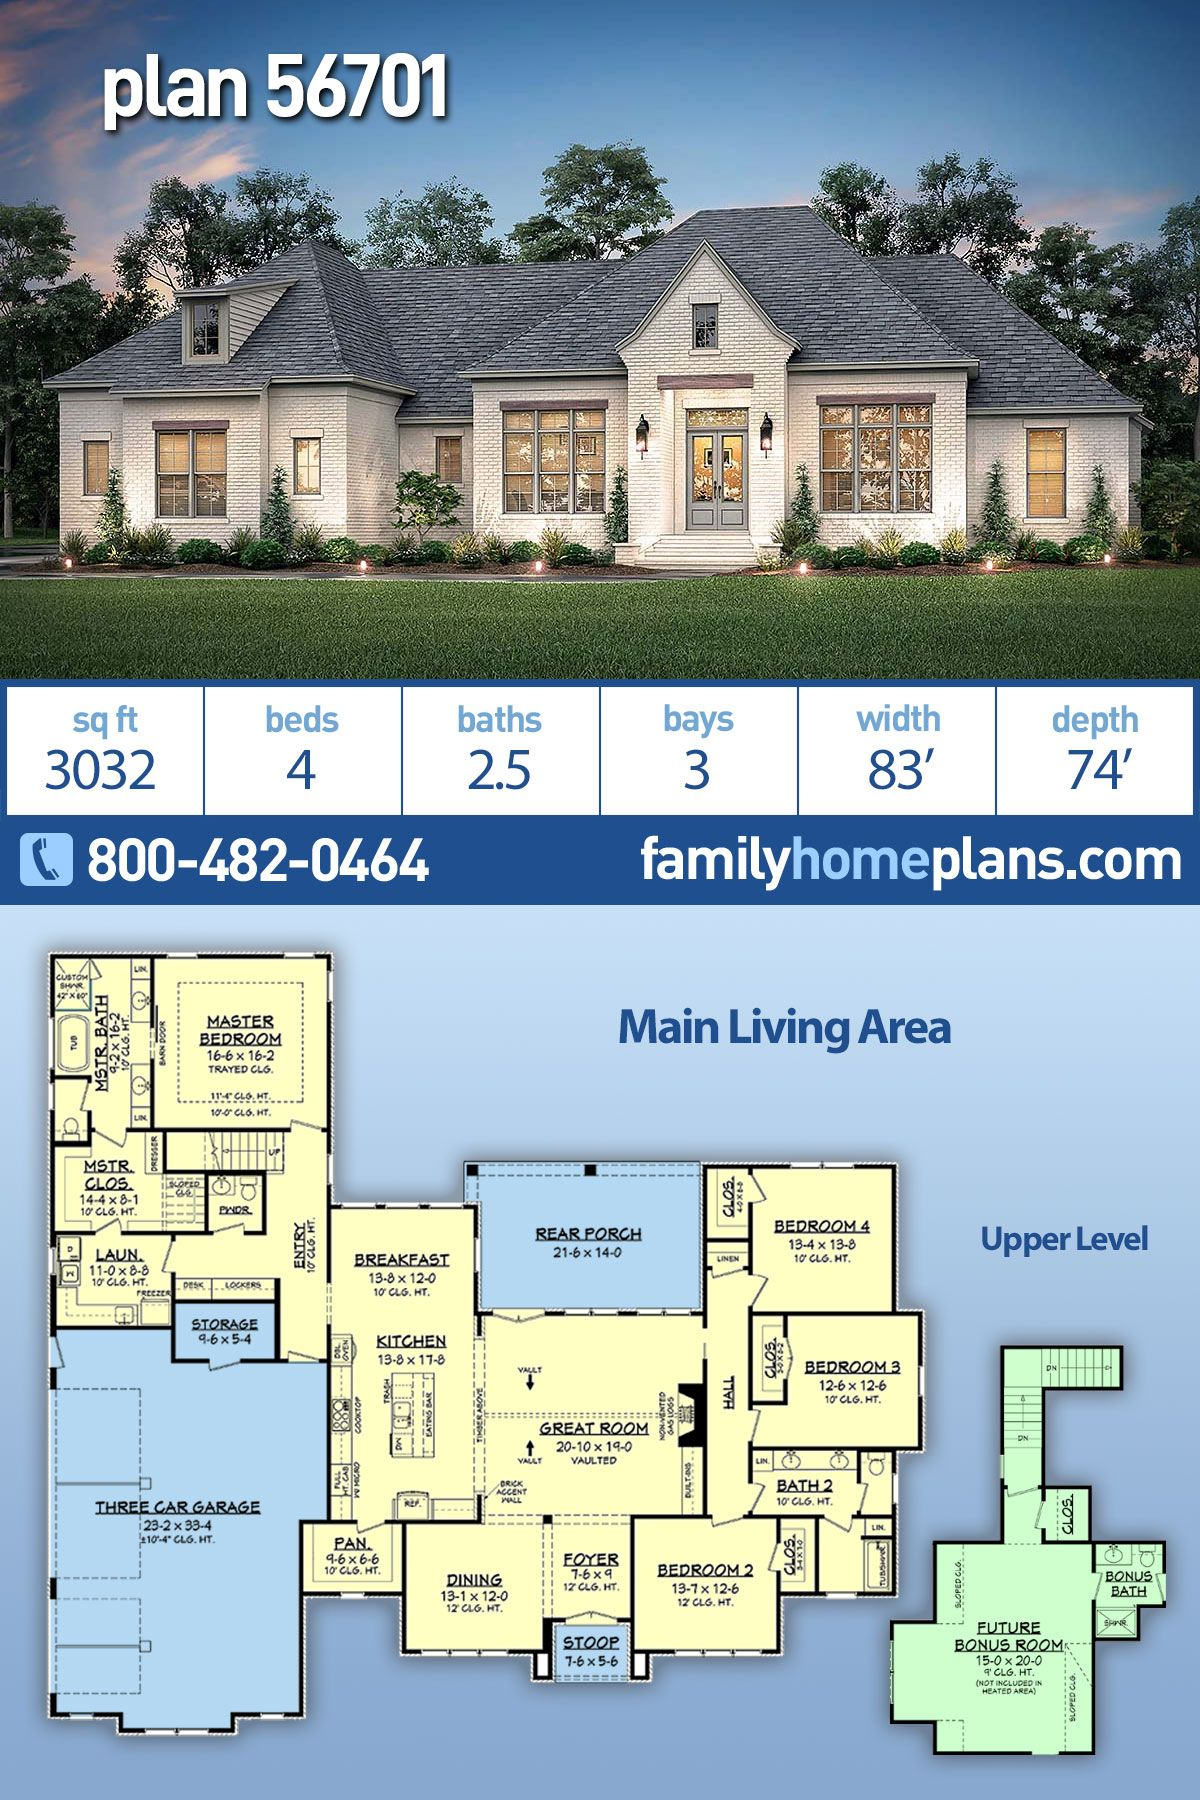 French Country Style House Plan 56701 With 4 Bed 3 Bath 3 Car Garage Family House Plans French Country House Plans French Country House